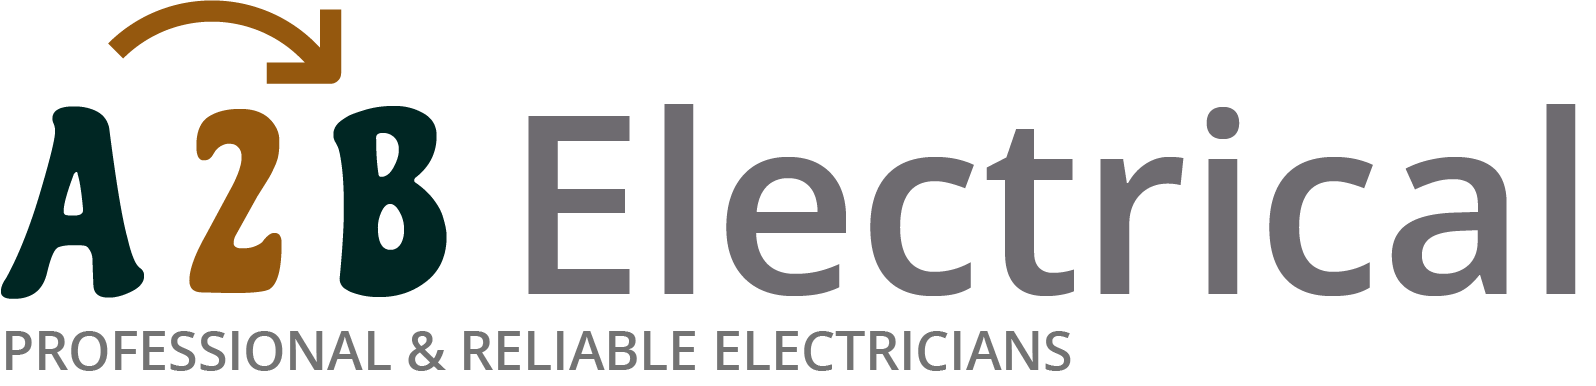 If you have electrical wiring problems in South Woodford, we can provide an electrician to have a look for you.